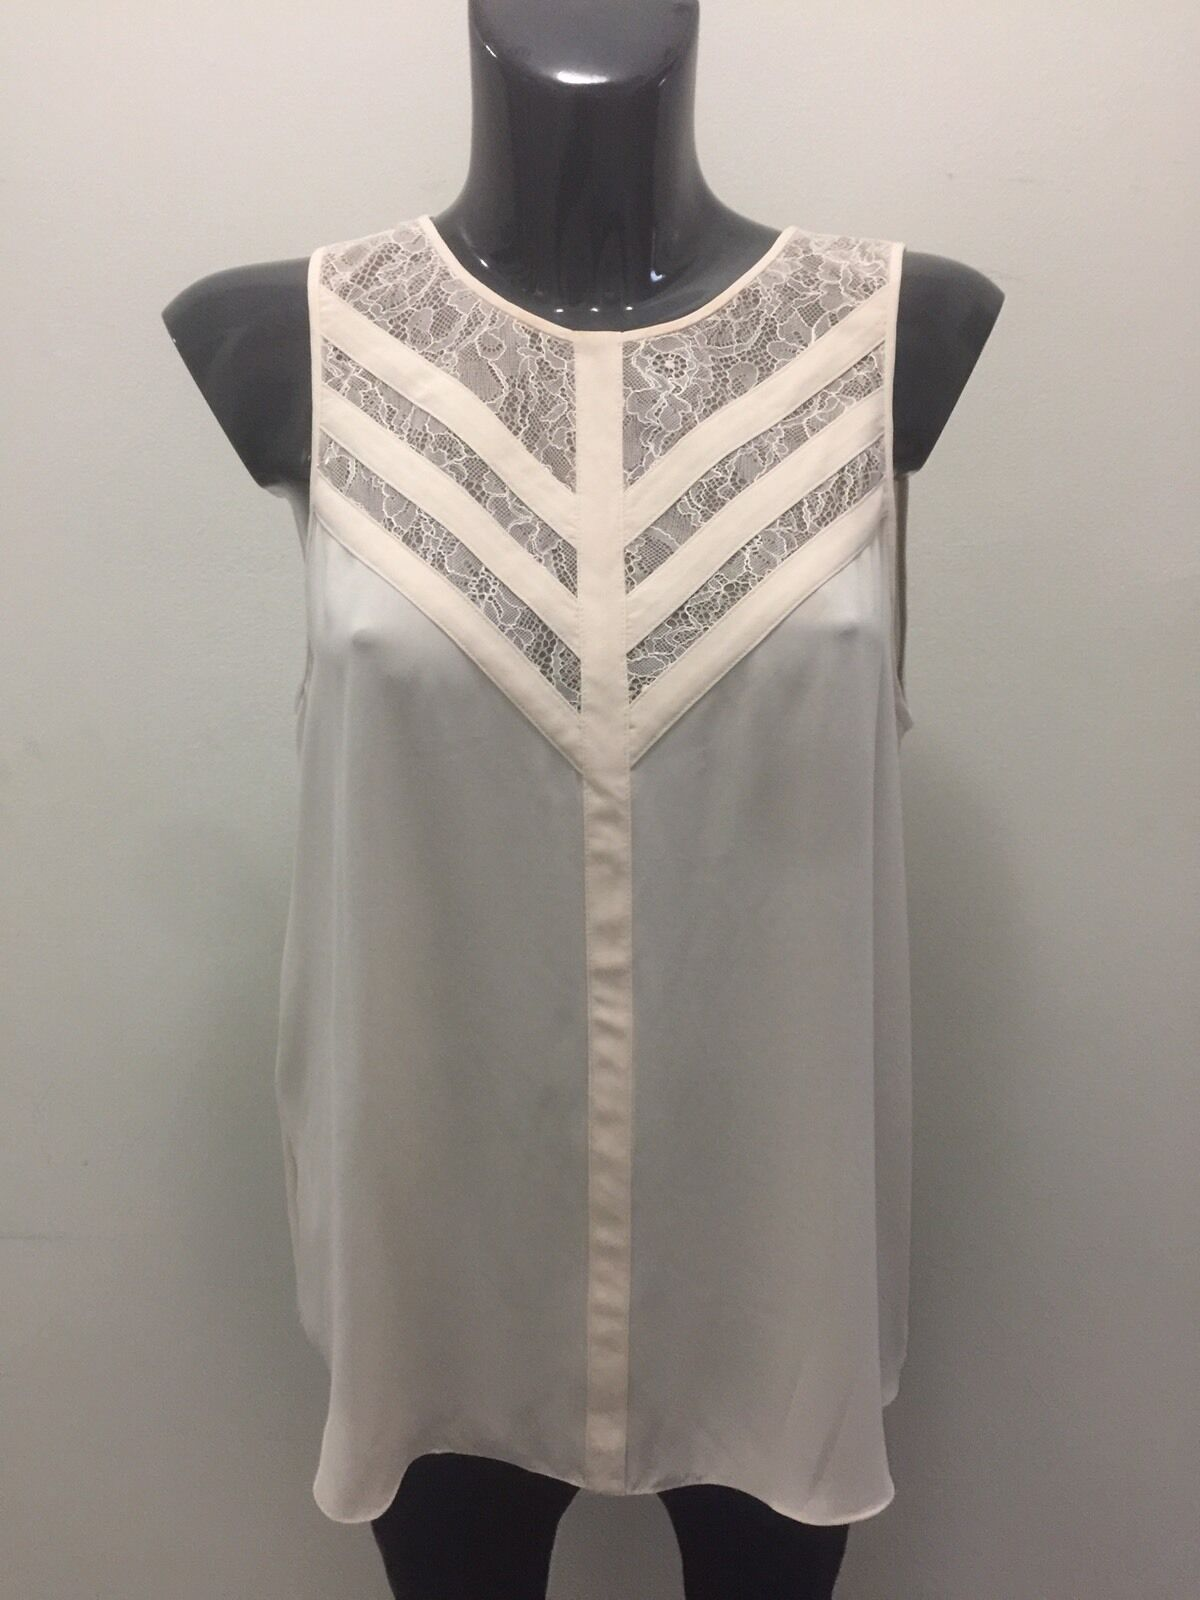 BCBG Max Azria Blouse, color Cream, Size Medium, Original Price  138